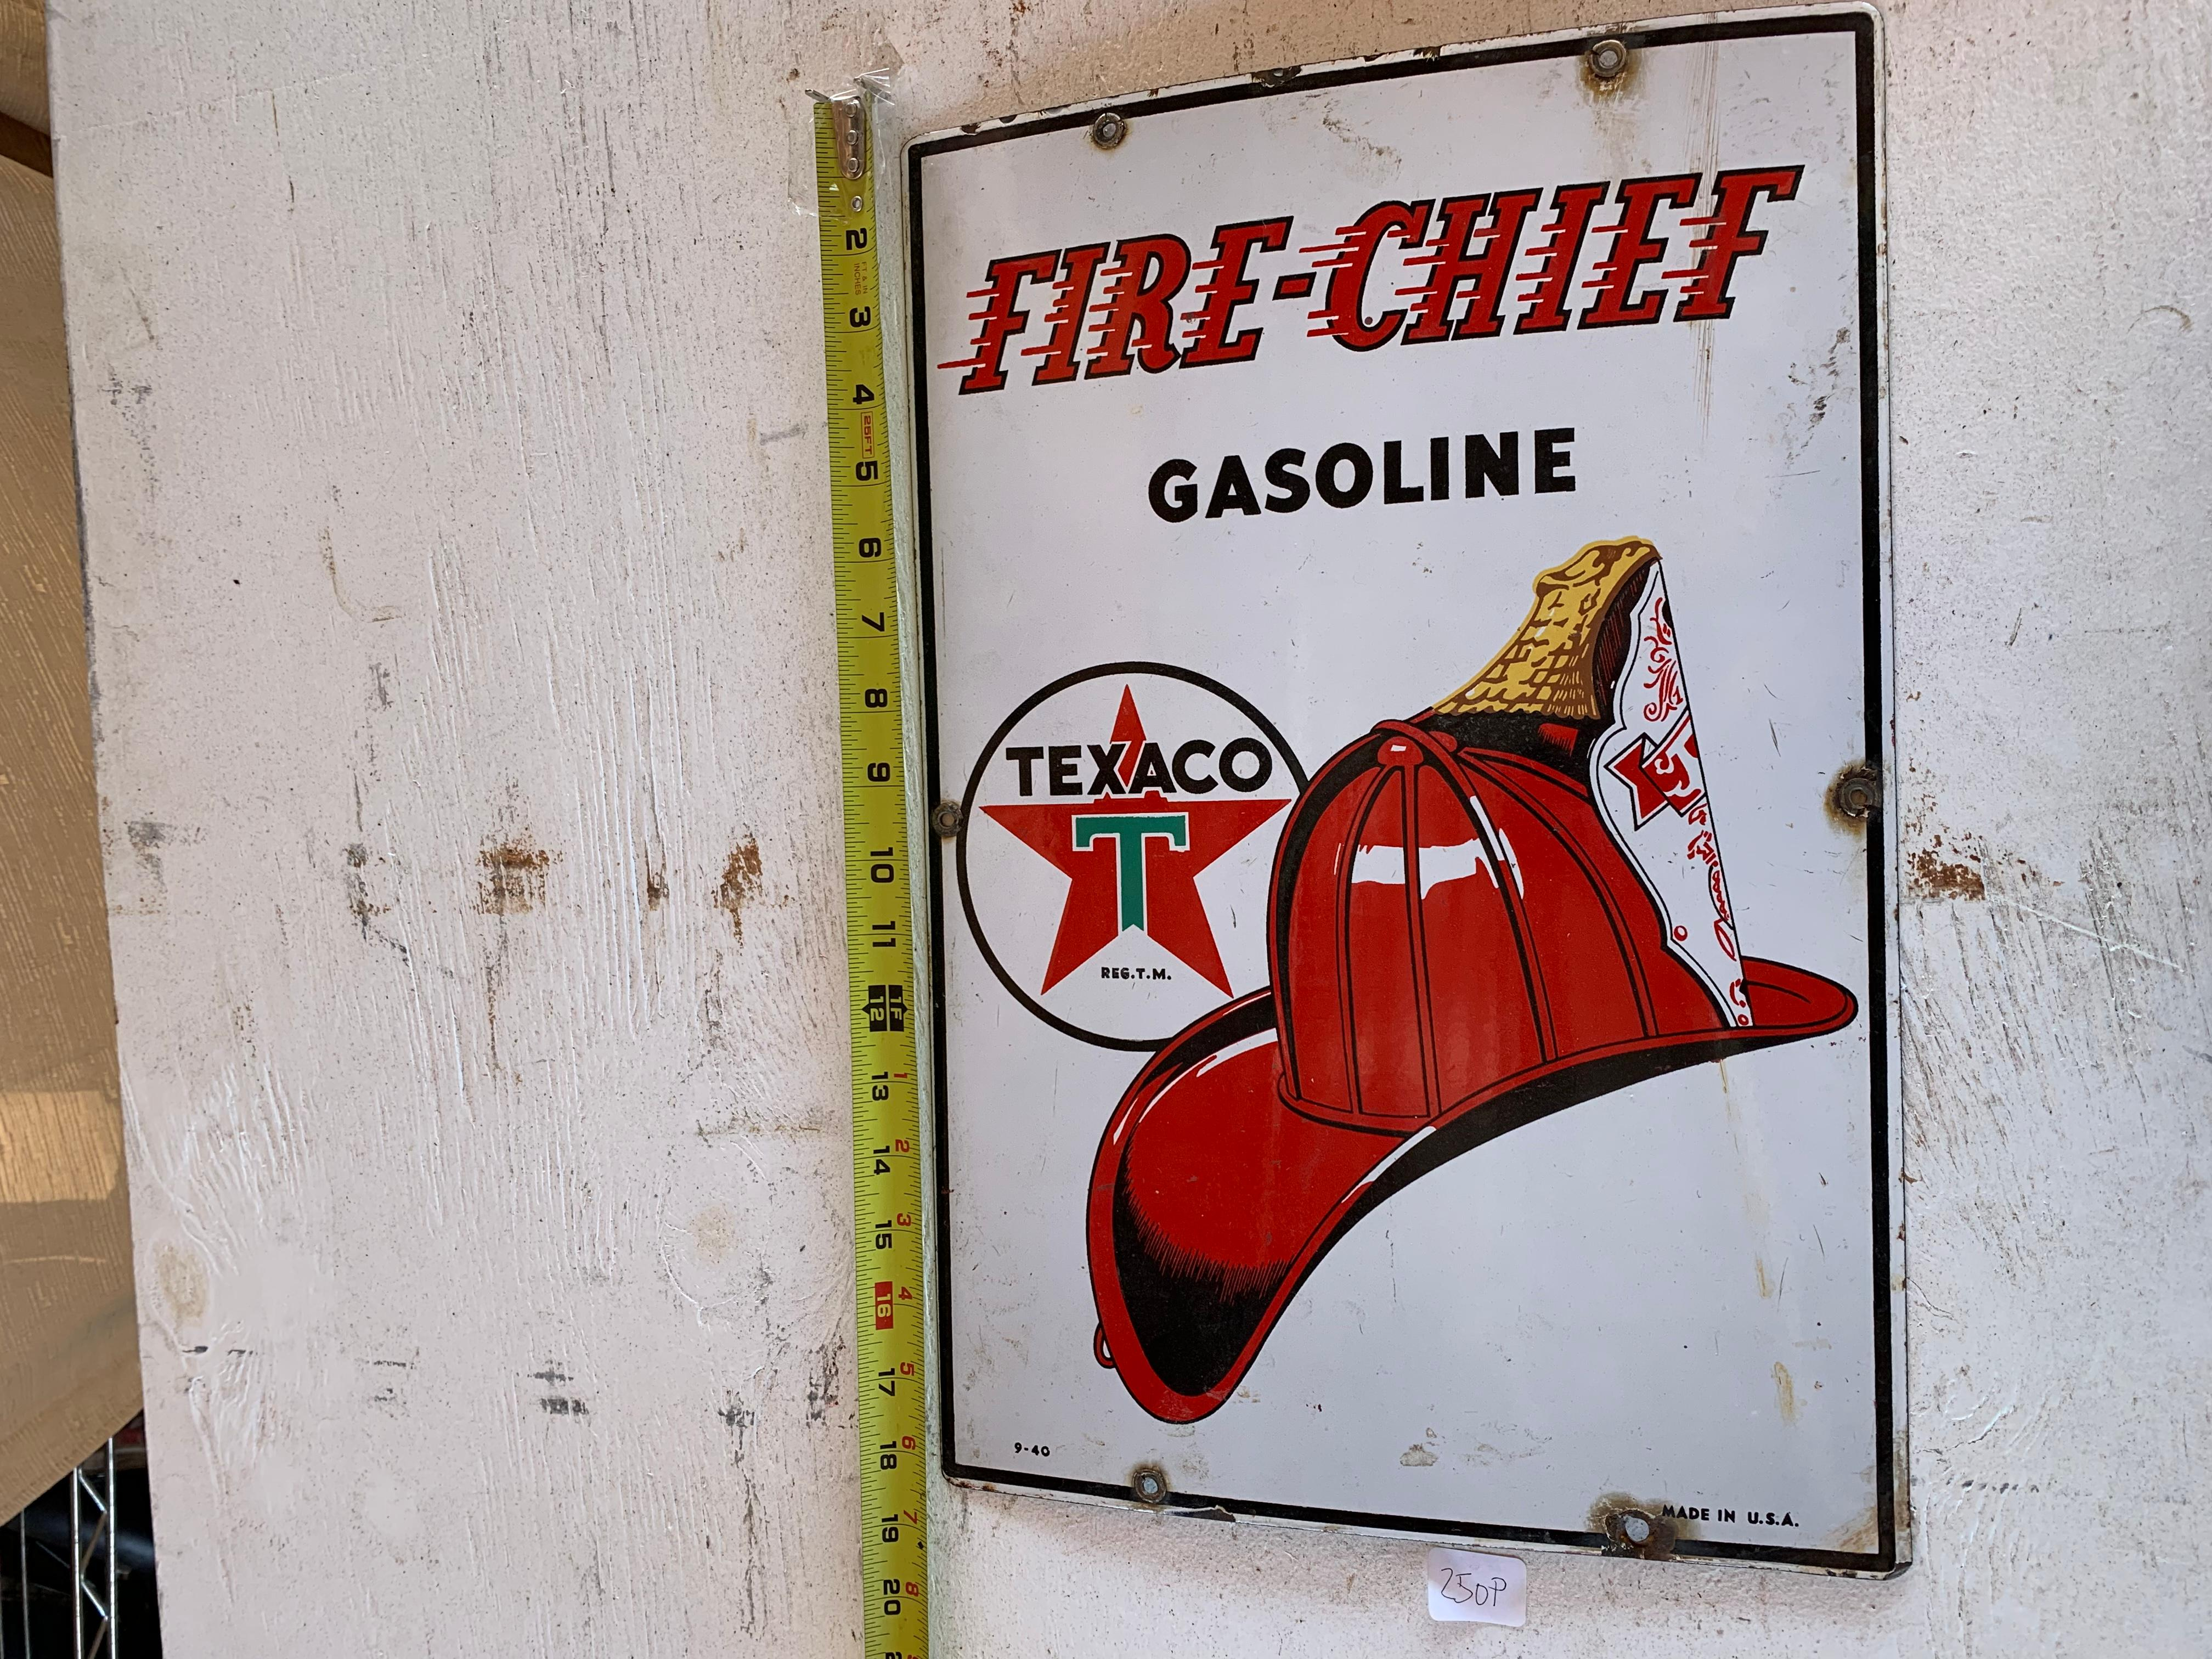 Genuine Original Porcelain Fire Chief Gasoline Texaco Pump Sign Dated 9-1940 Shows Signs of Rust Around Drill Holes, Minor Chips and Wear 18'' L